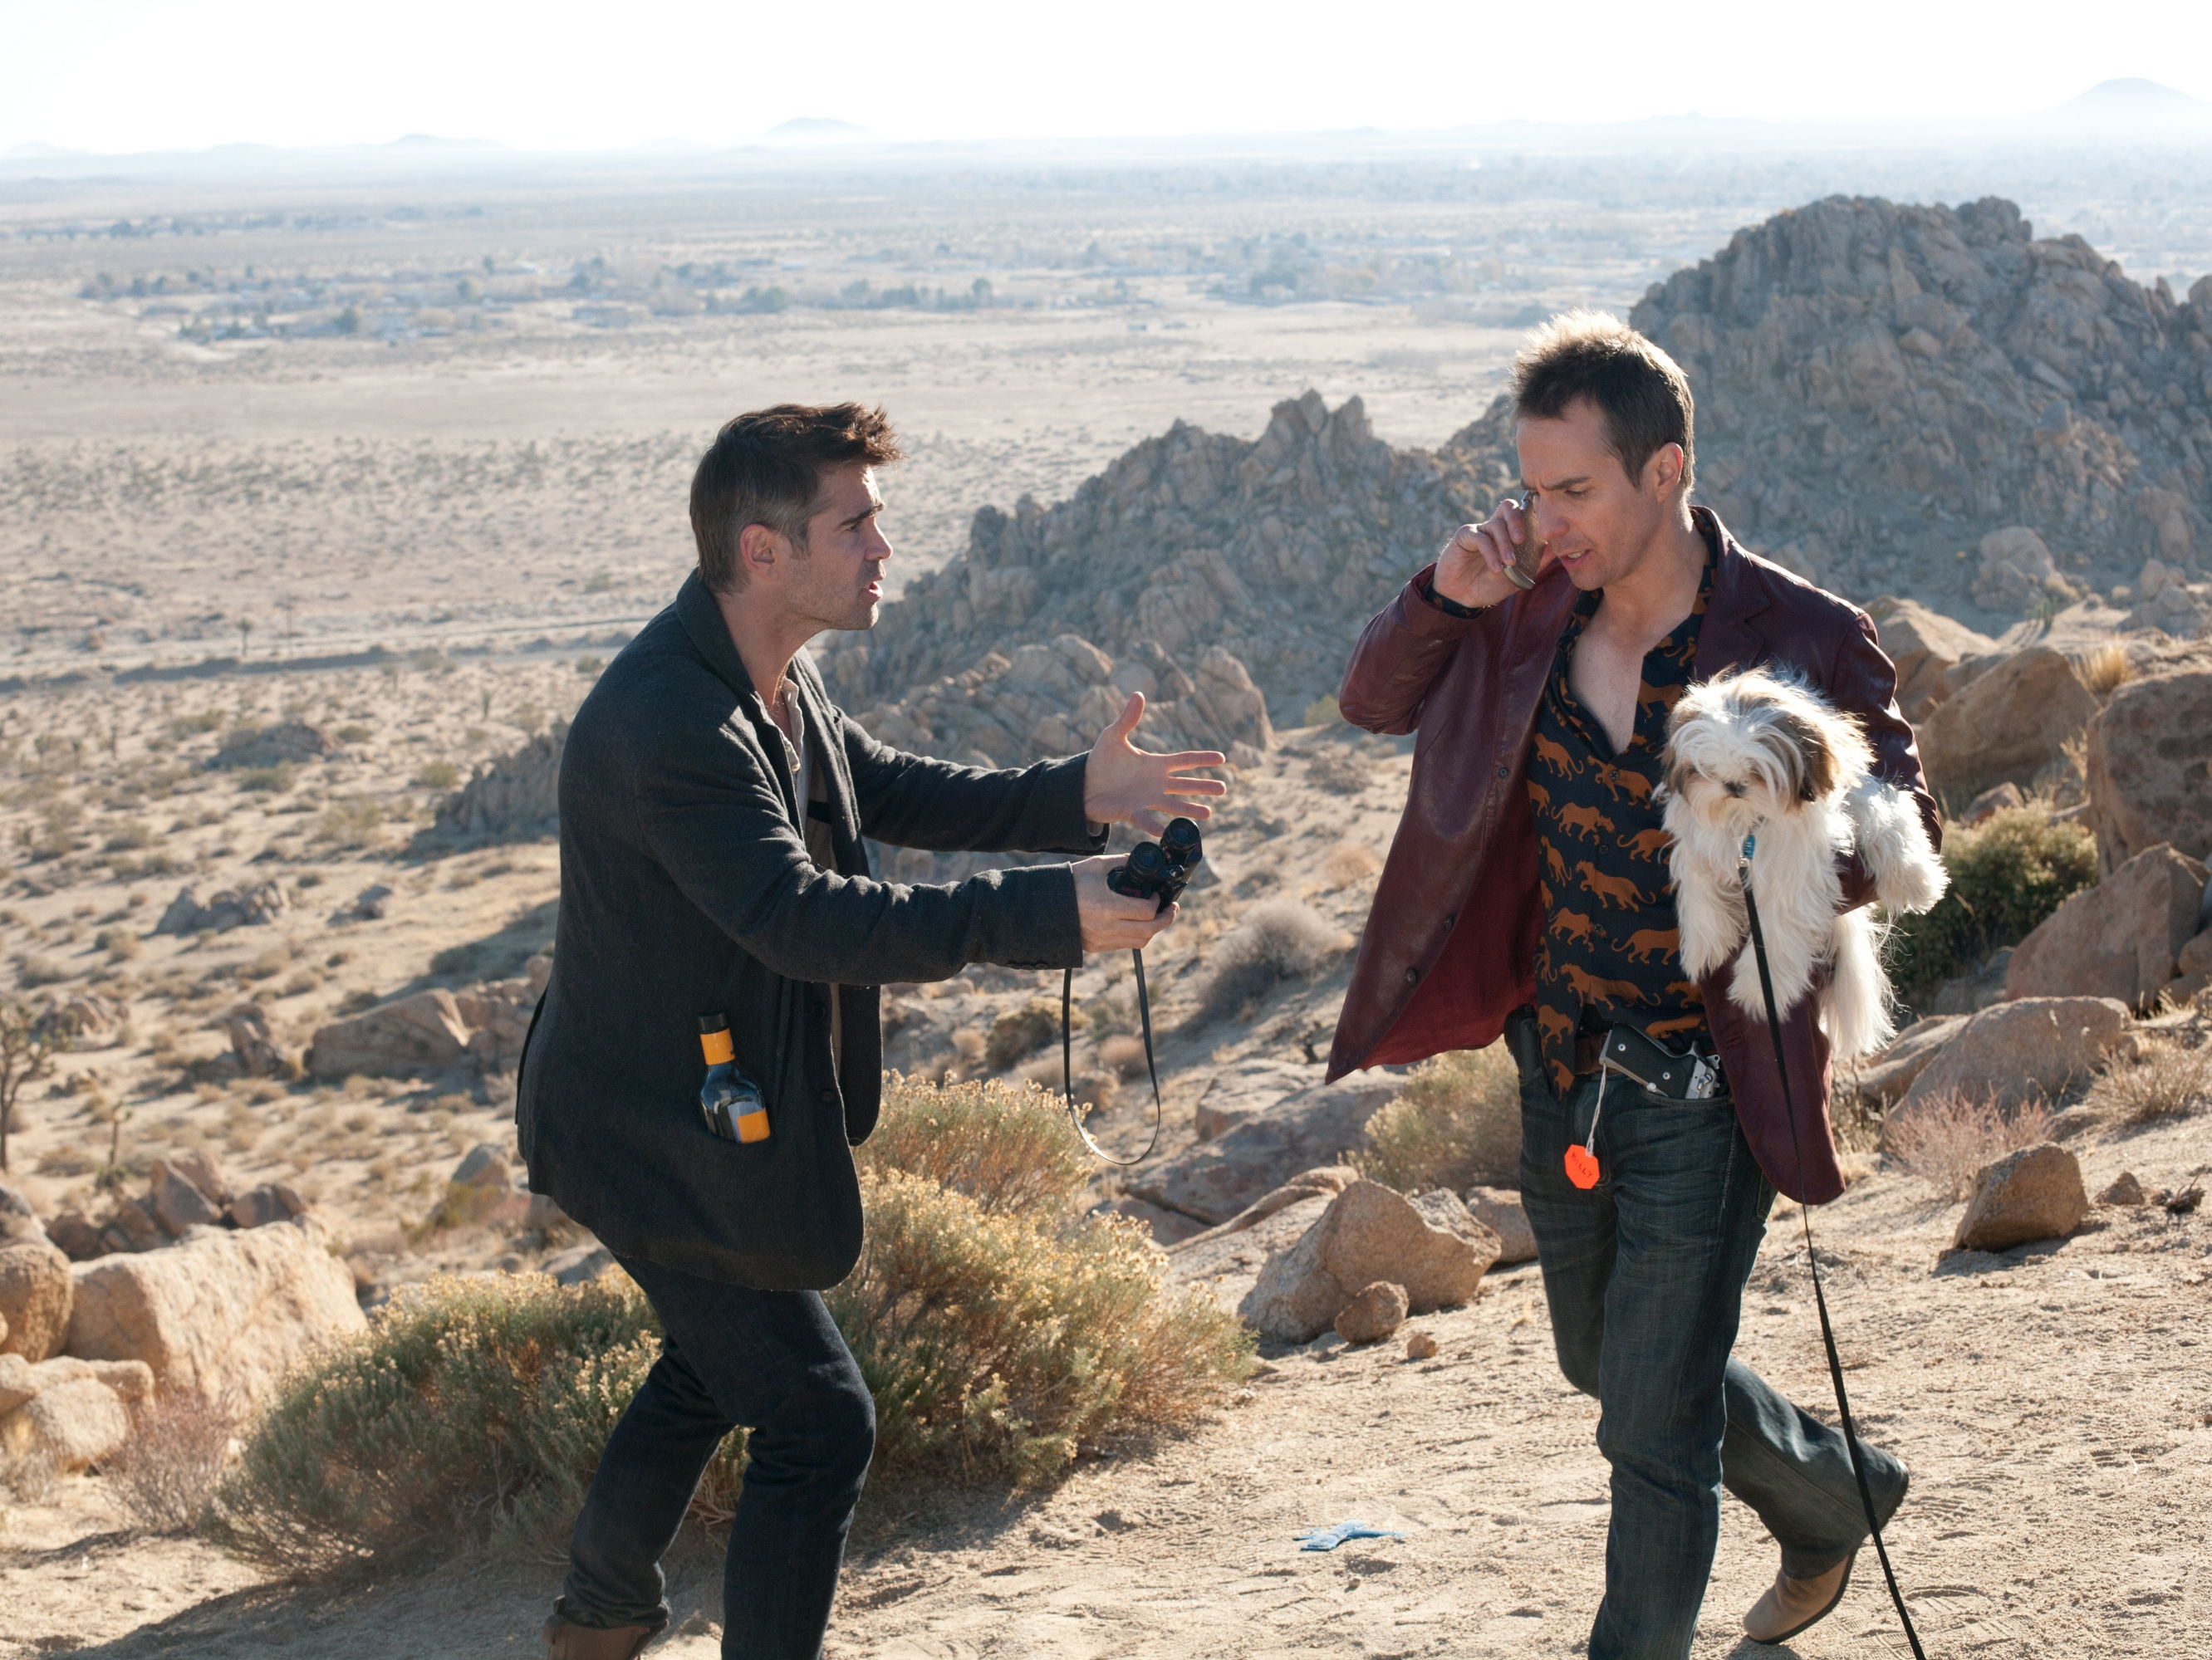 'Seven Psychopaths' Review: Twisted Dog Thieves Highlight Pitch Black Romp